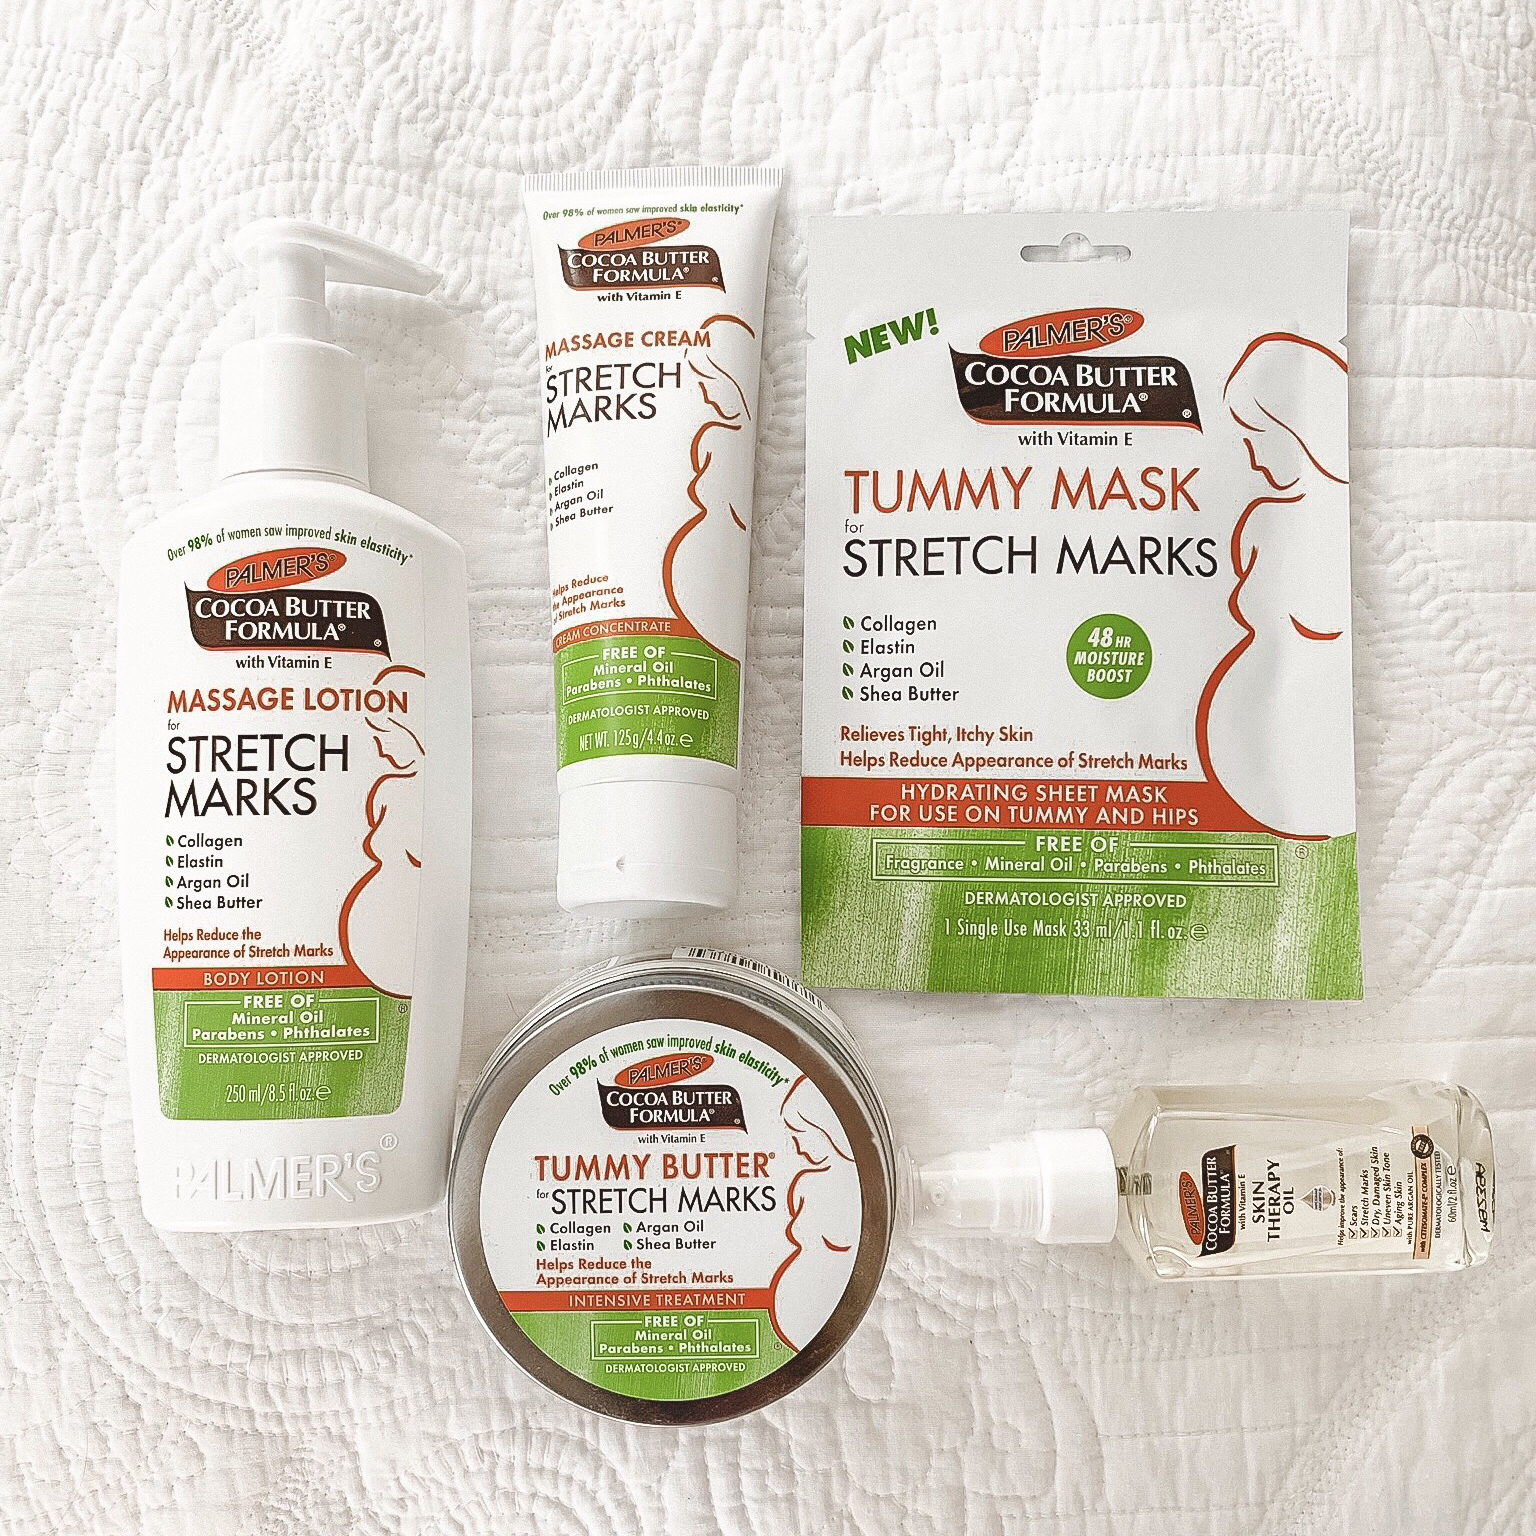 Palmer's Cocoa Butter For Pregnancy Stretch Marks Collection